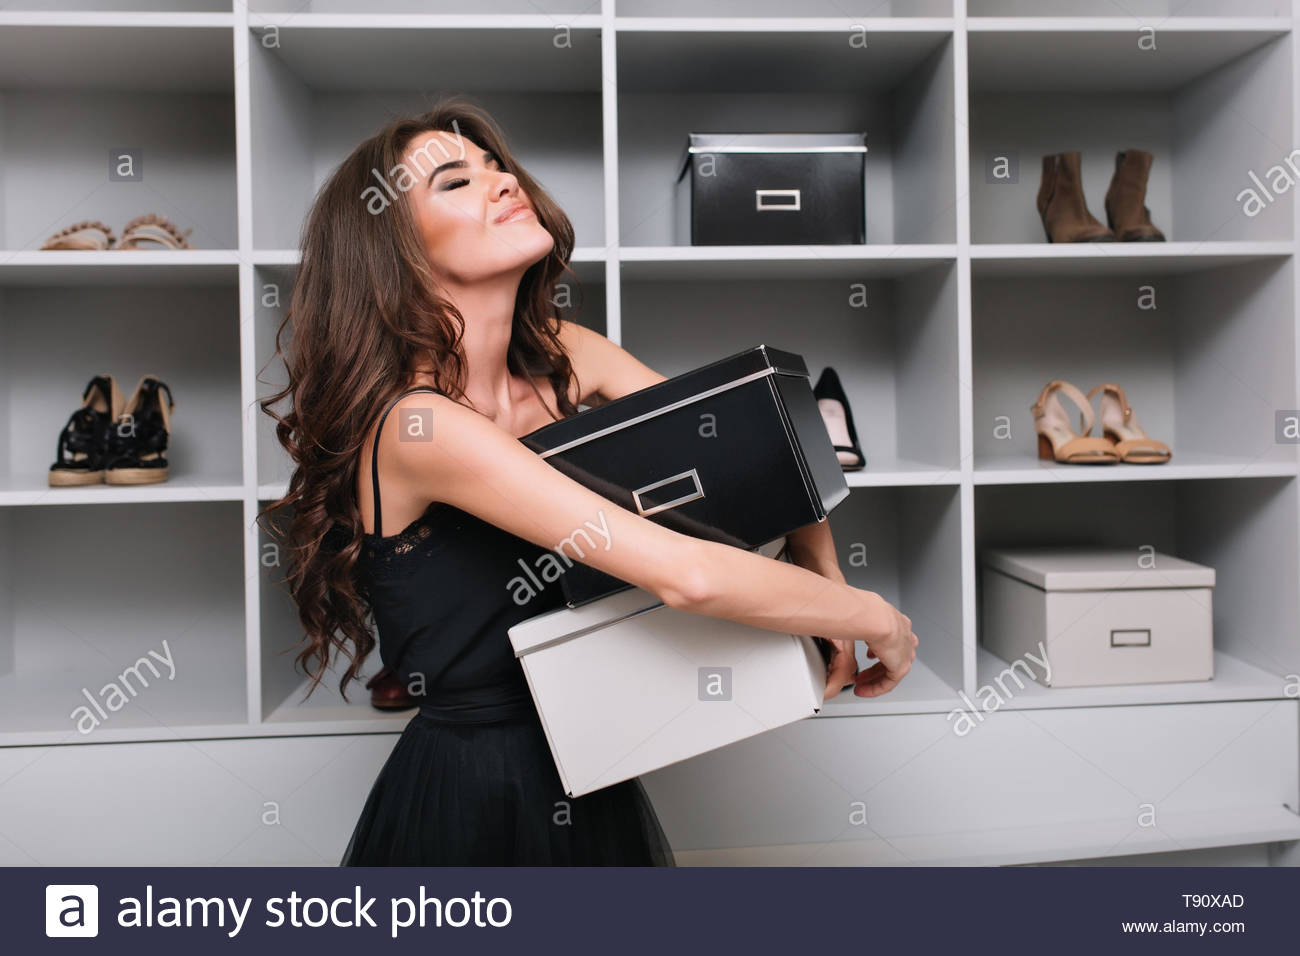 Pretty young woman hugging boxes of shoes around stylish dressing room, wardrobe. She's very happy, pleased, has closed eyes, she bought what she wanted. She wearing black dress, has long curly hair. - Stock Image